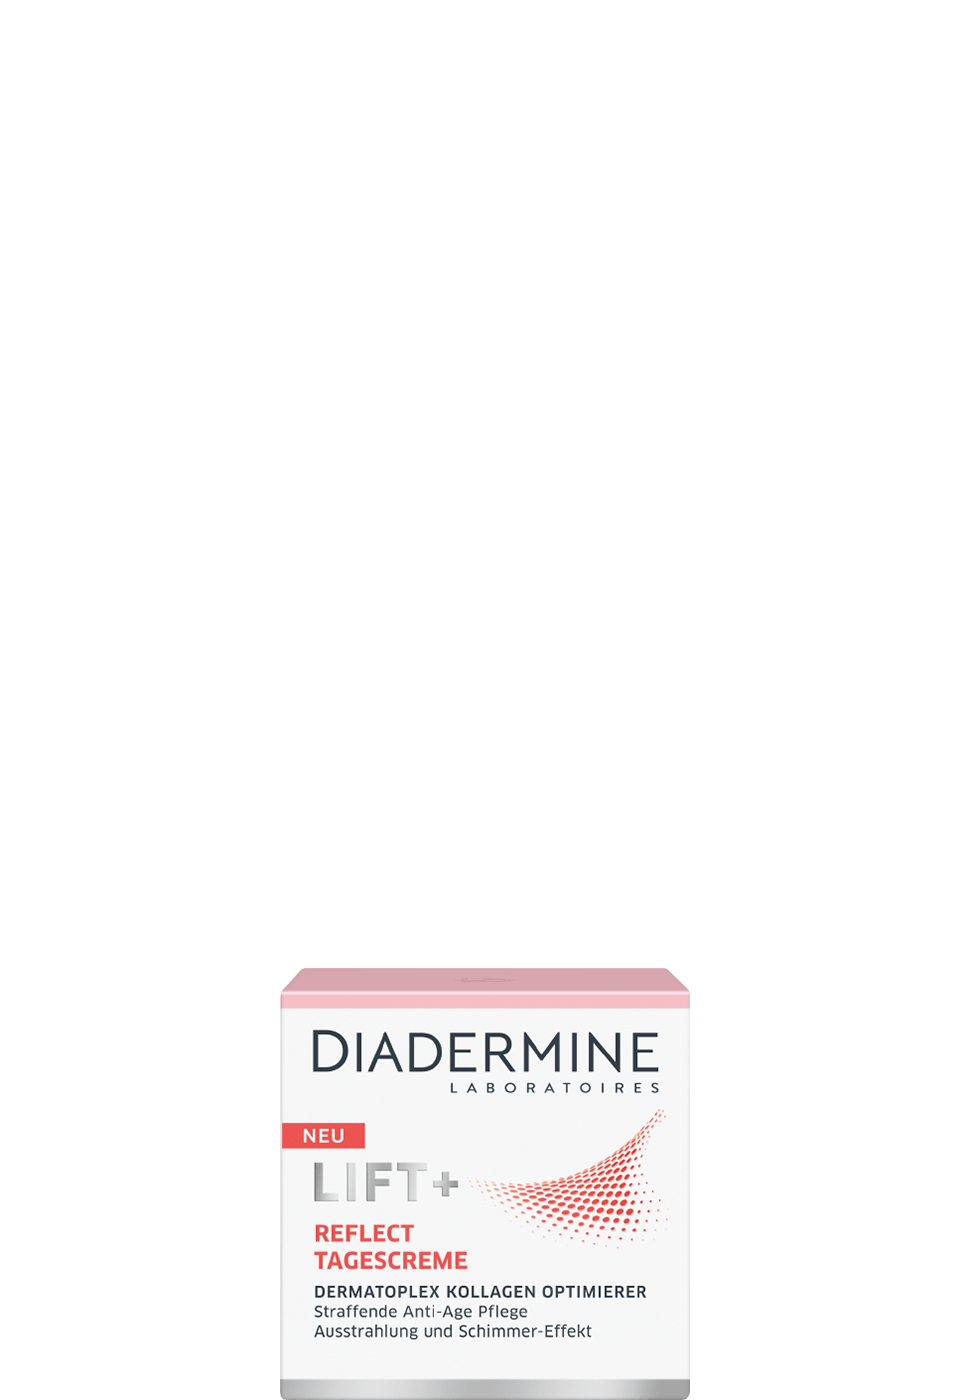 diadermine_at_lift_plus_reflect_tagescreme_970x1400